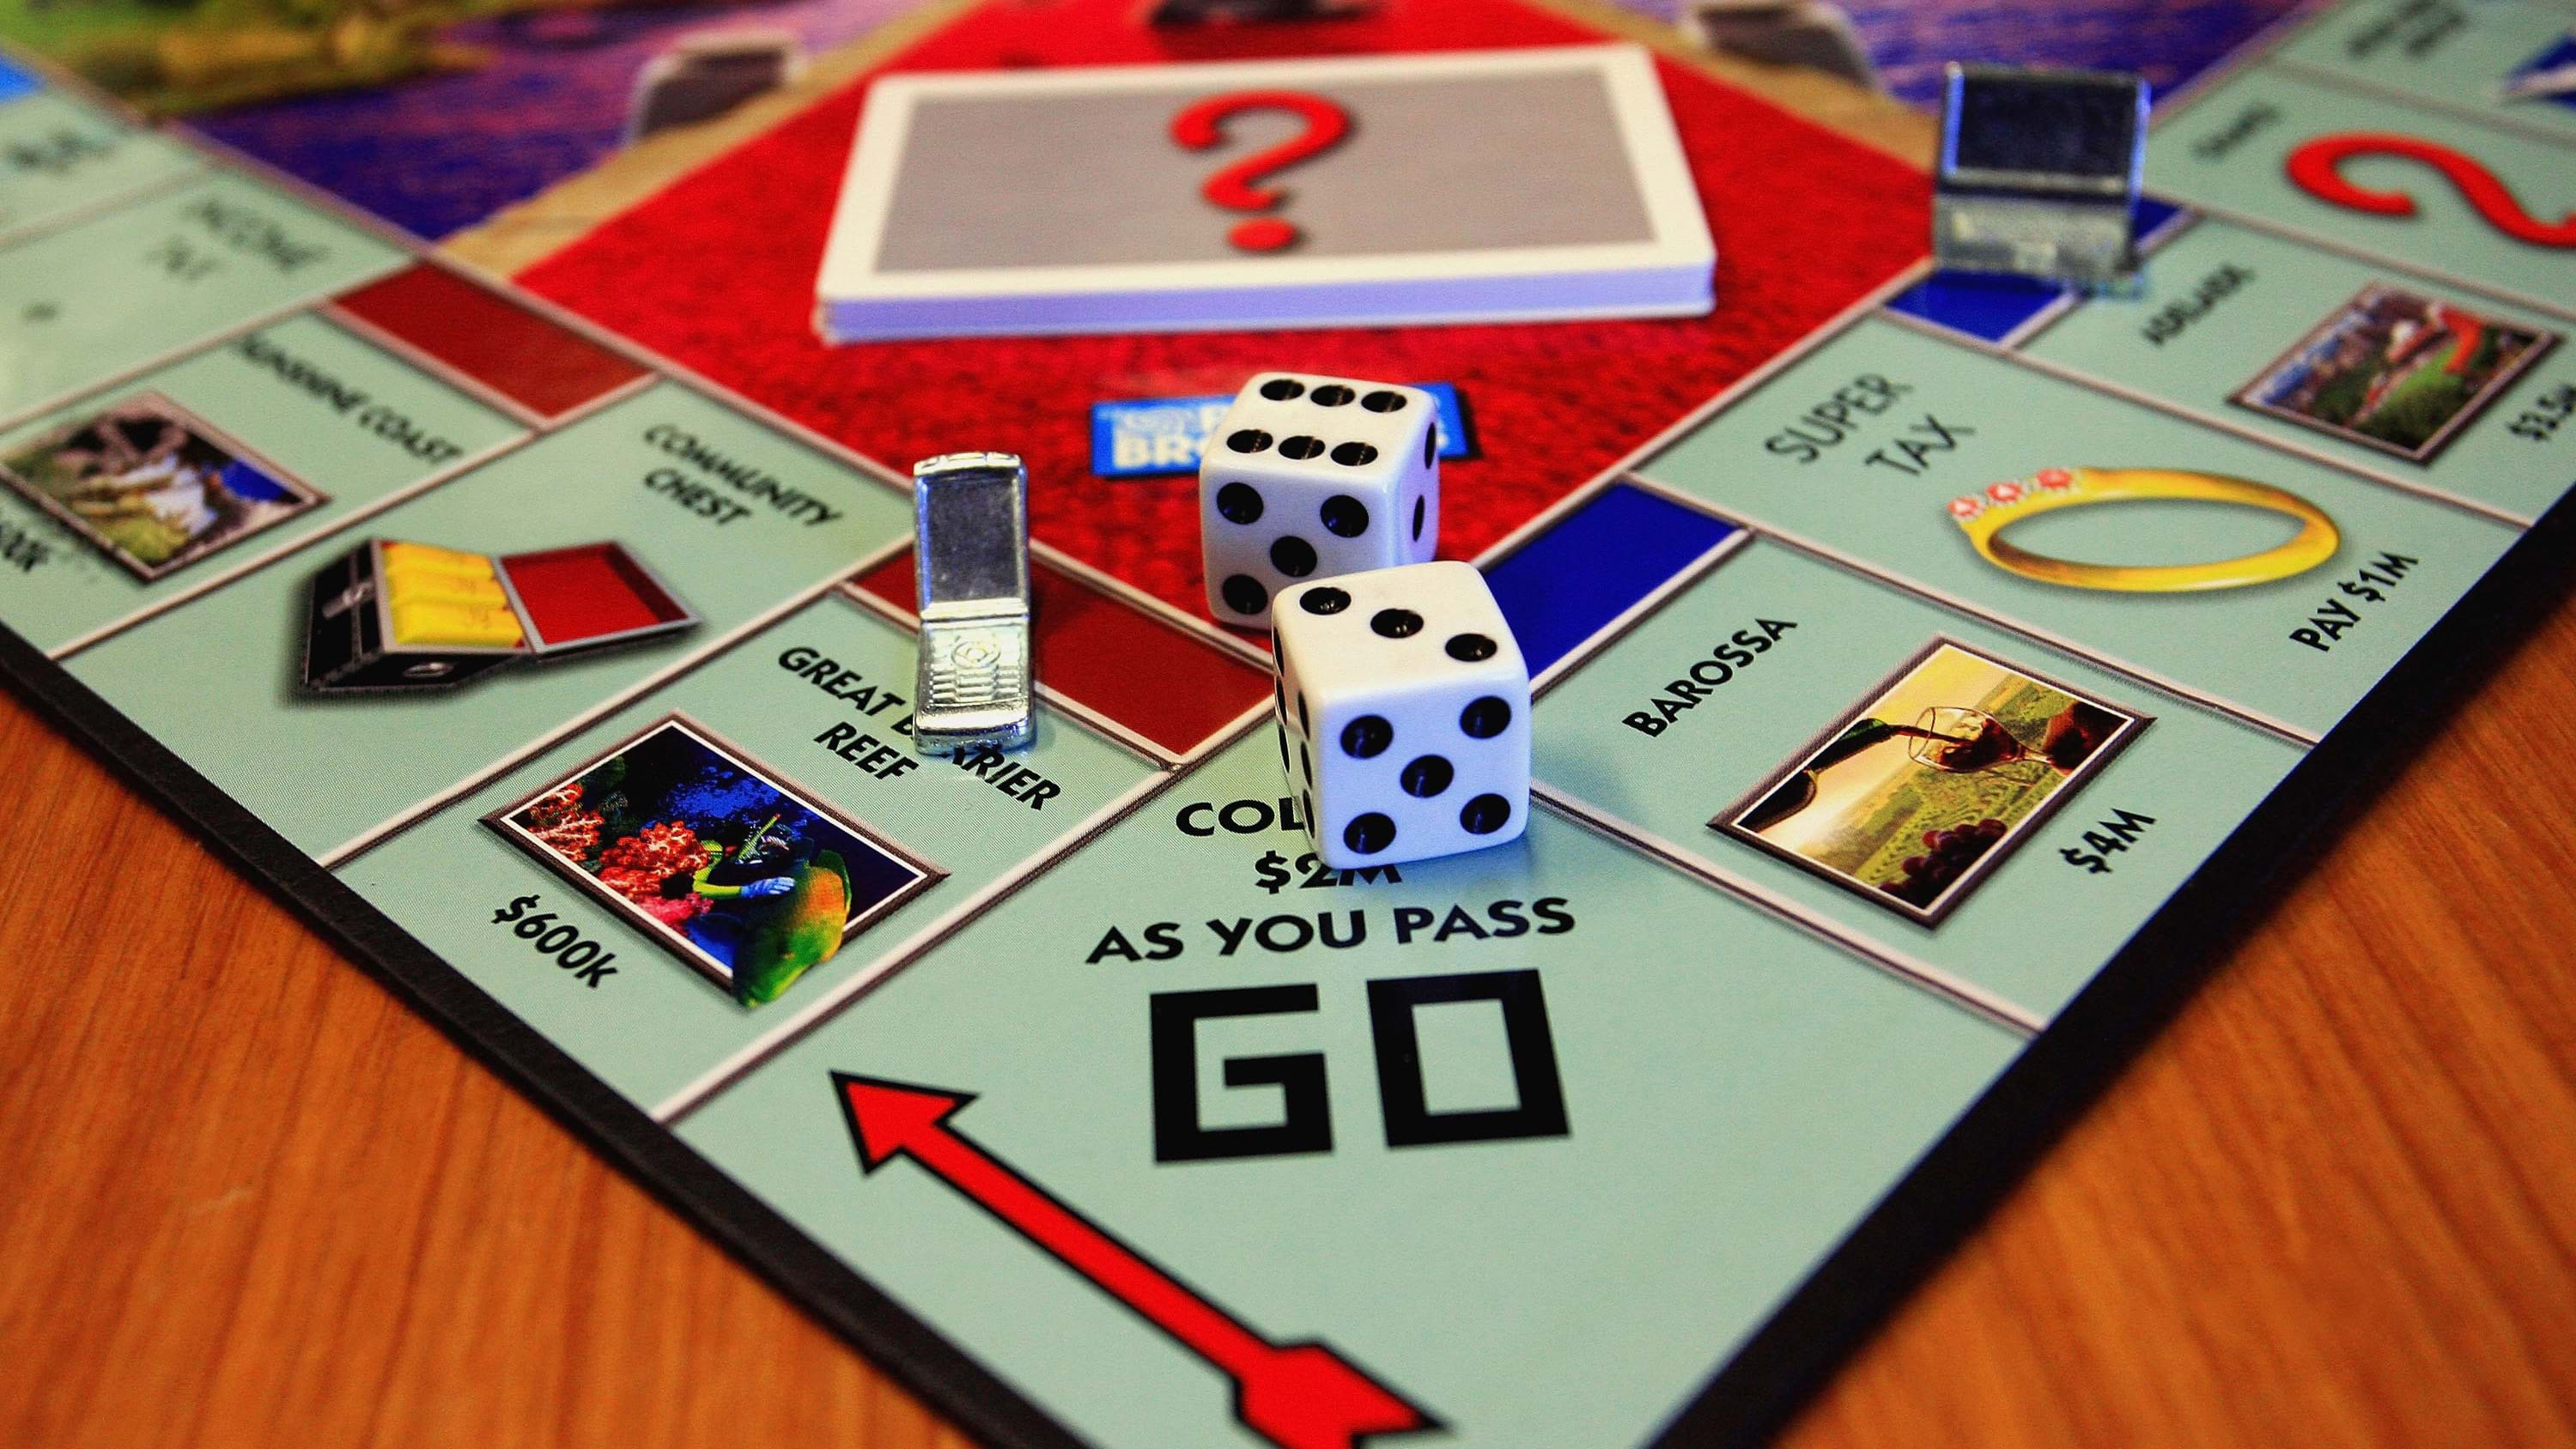 Hasbro tried exposing Monopoly cheaters. But now they're catering to them instead